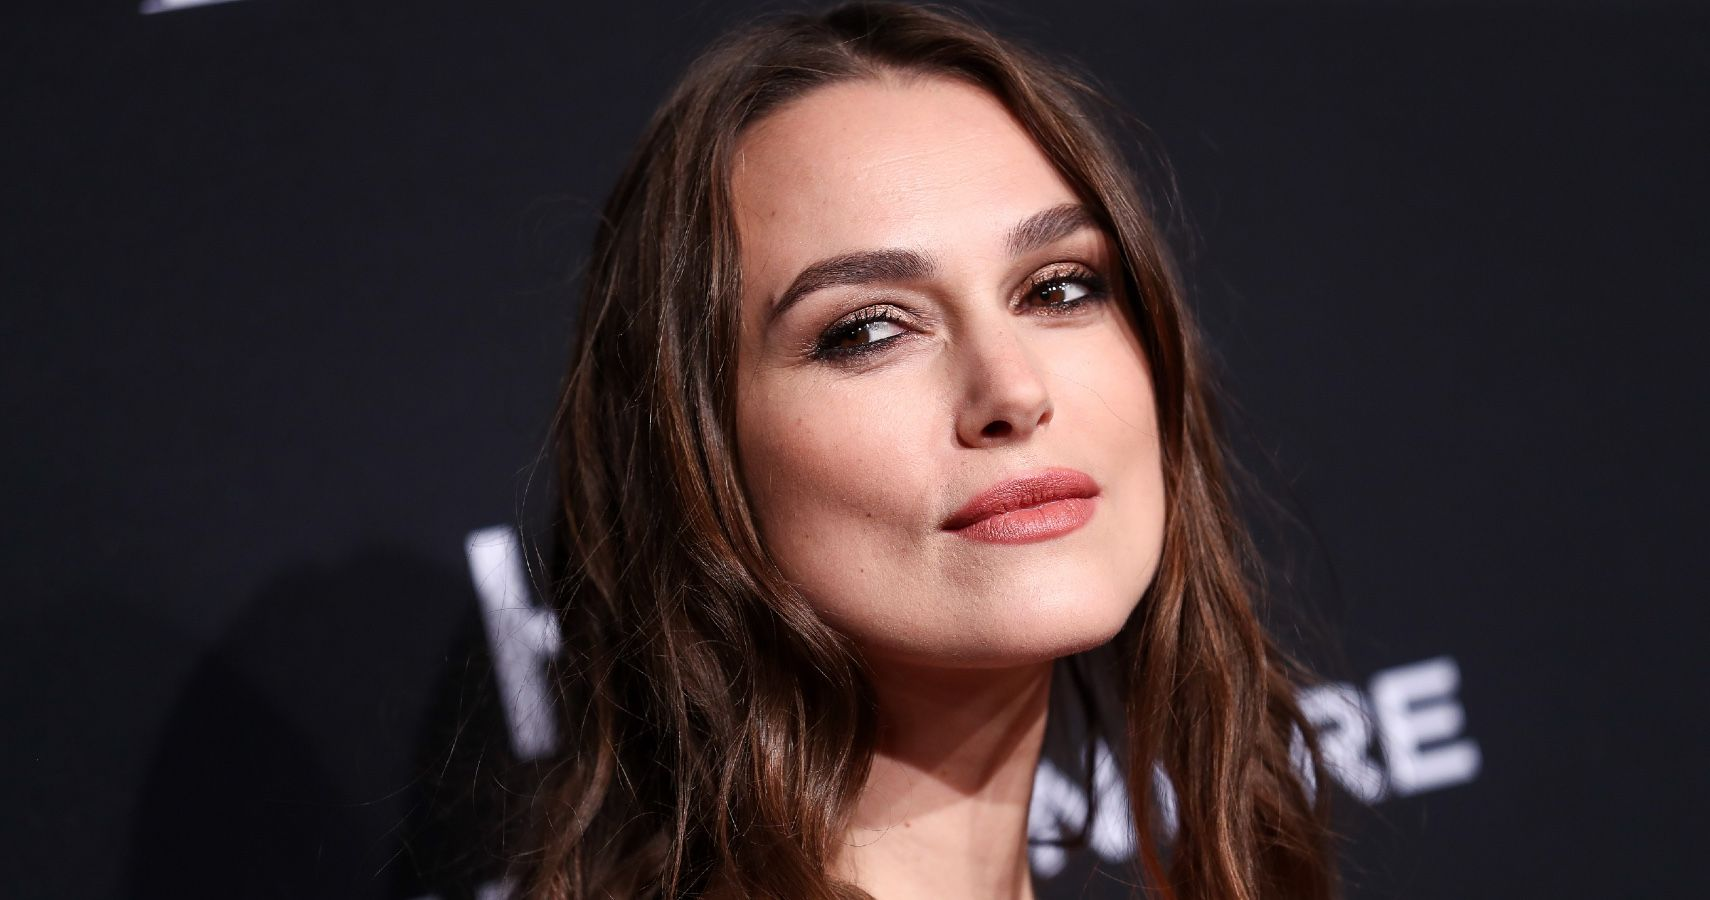 Sexist Trolls Slam Keira Knightley For Not Filming Intimate Scenes Directed By Men